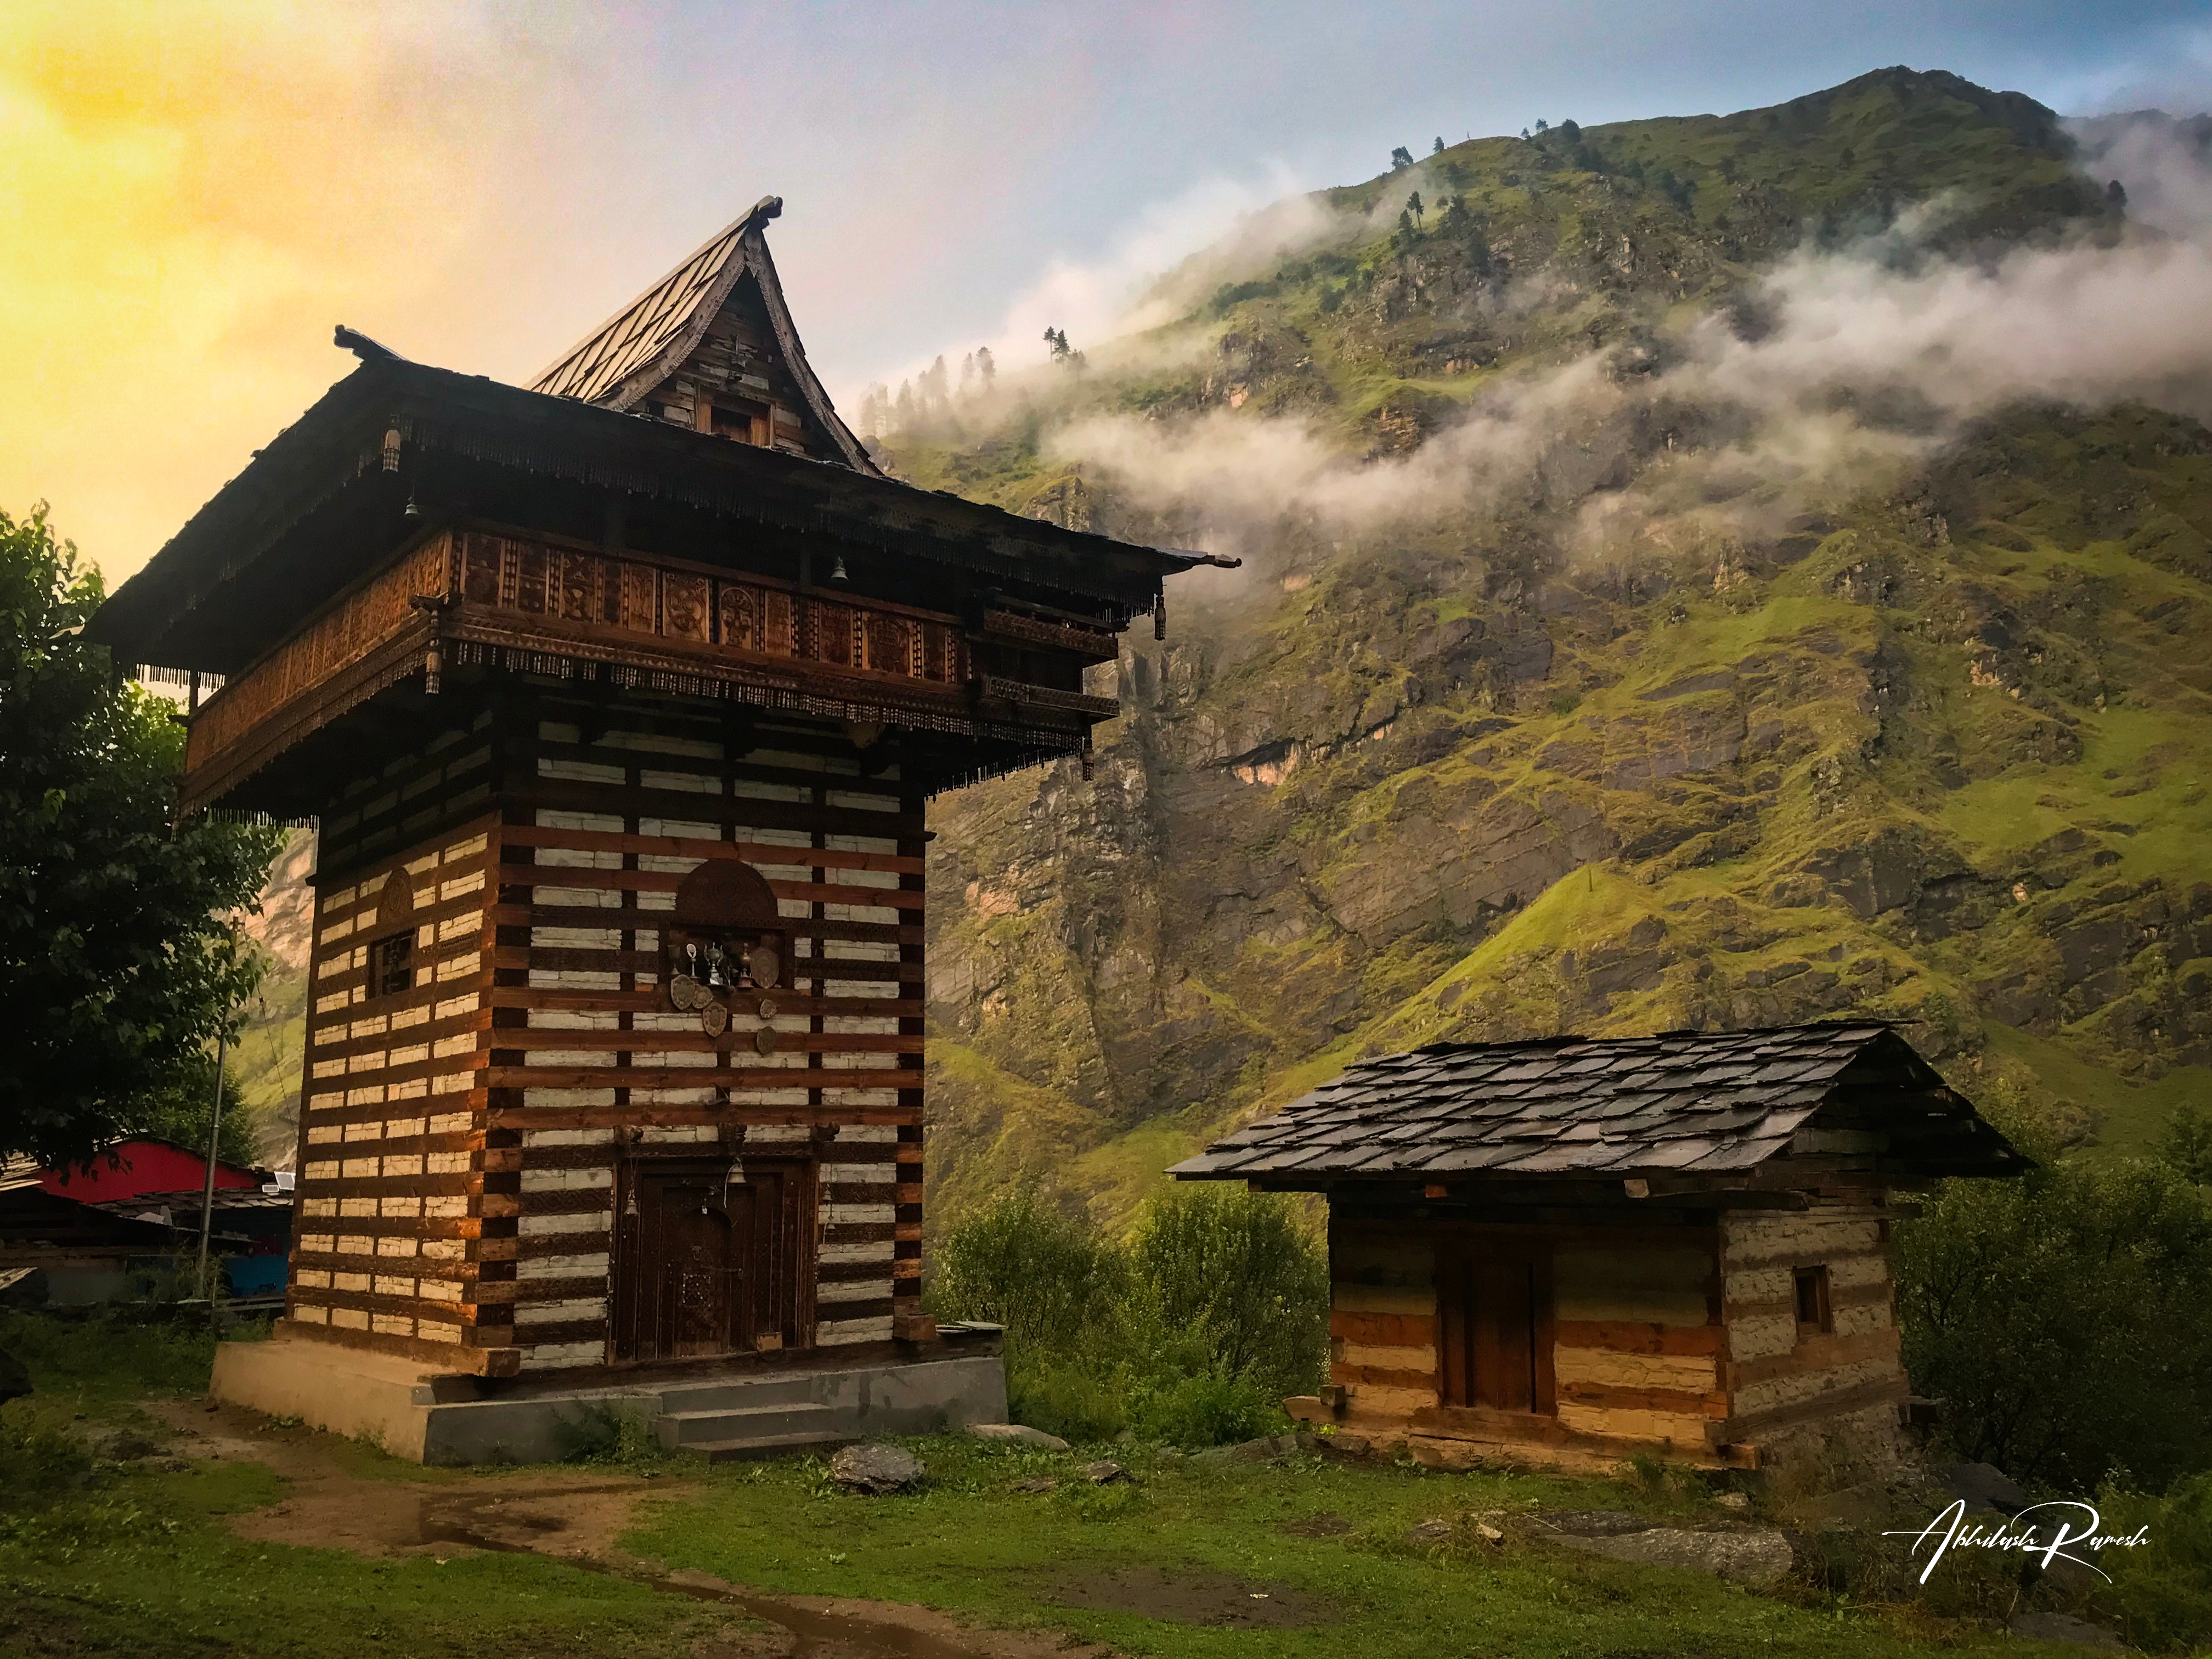 The Sewa temple with the mountains behind